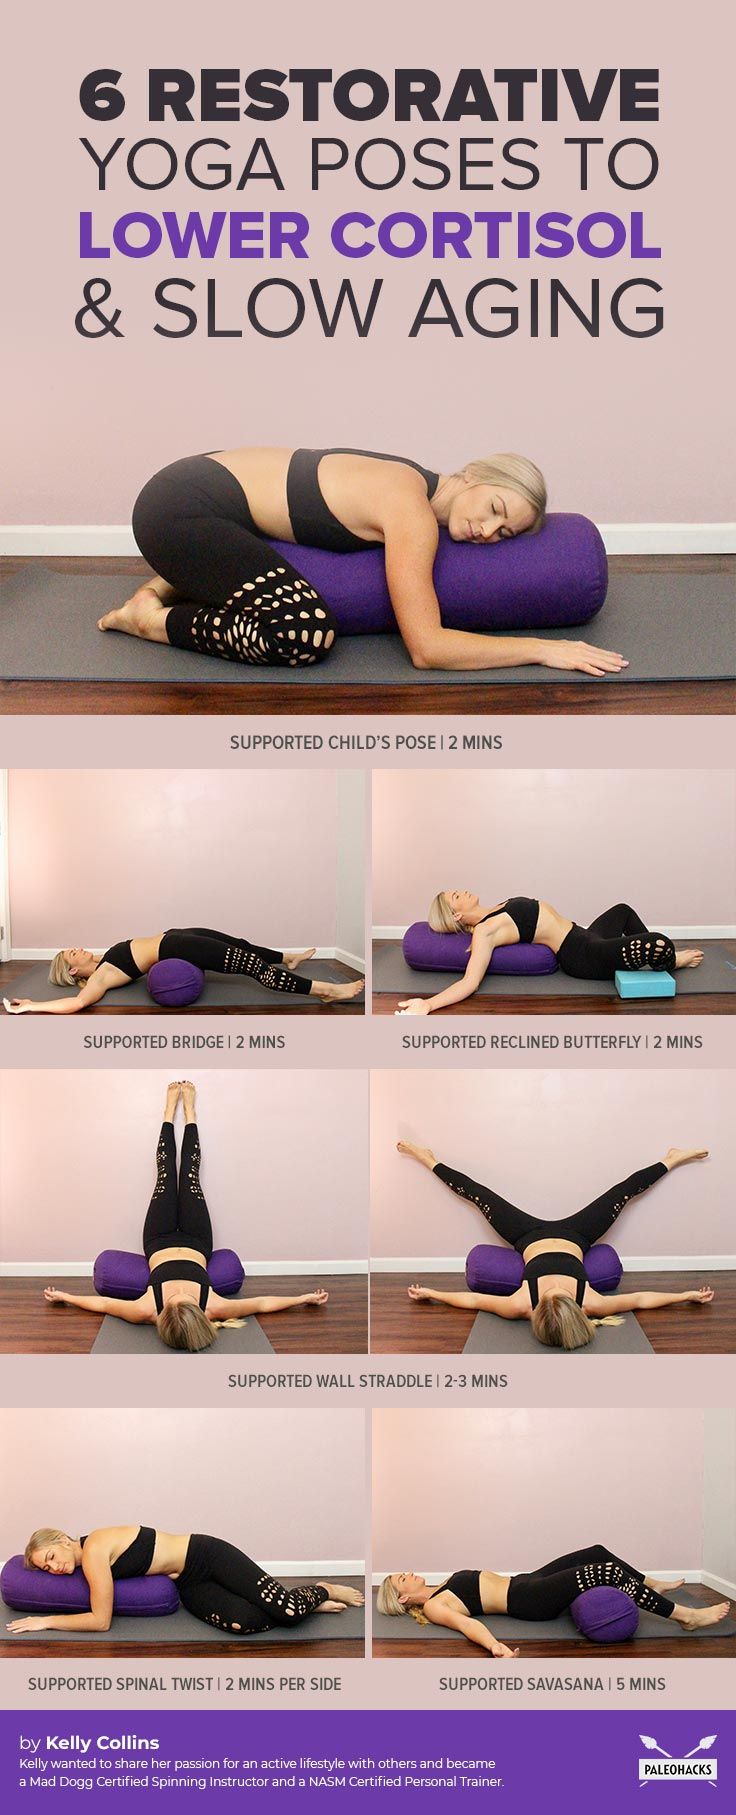 Melt Into This Restorative Yoga Routine To Lower Cortisol & Slow Aging #cardioyoga